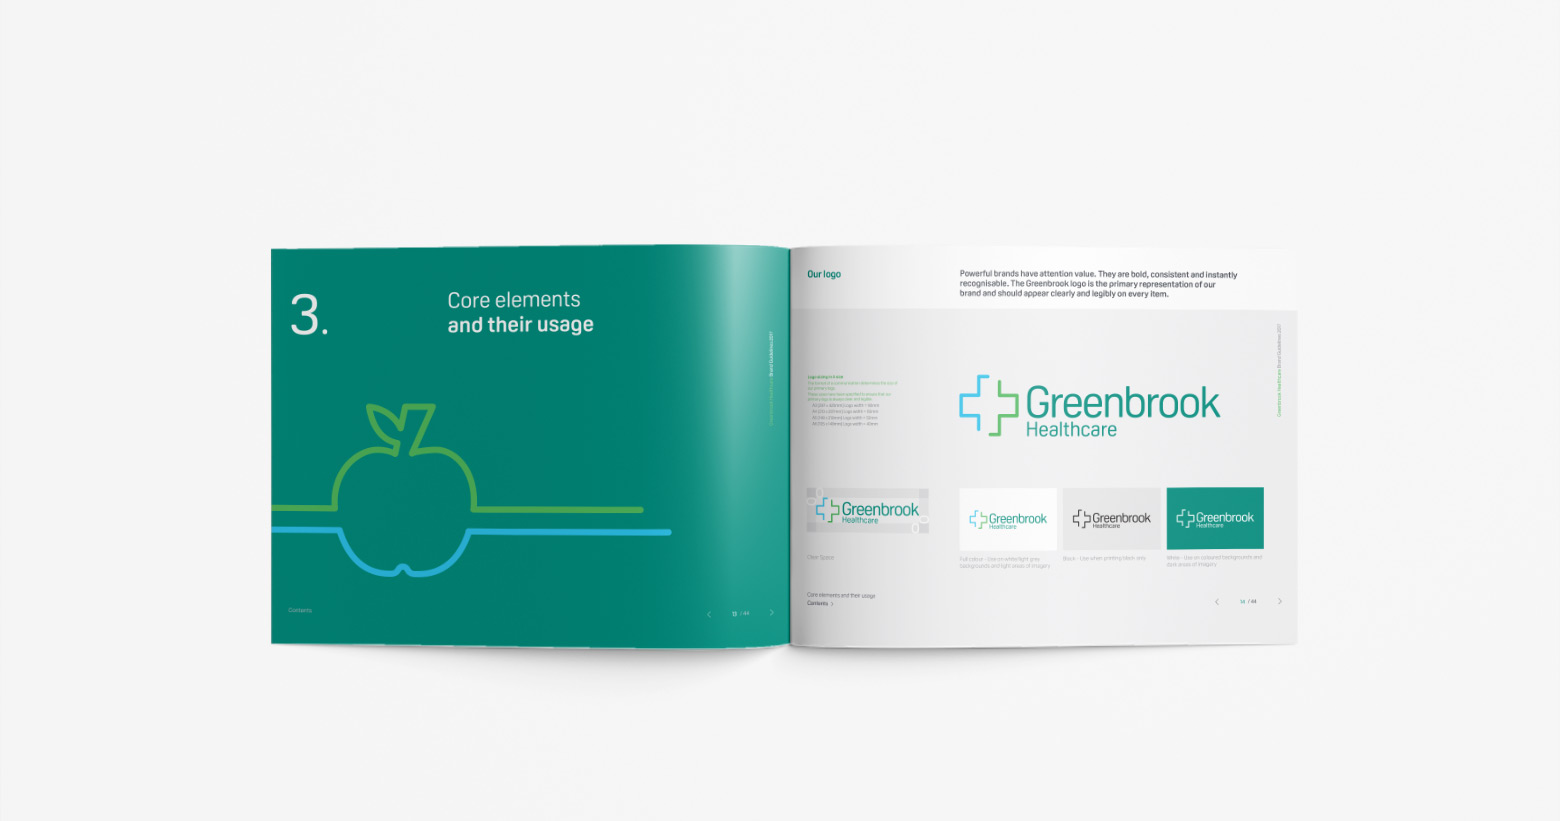 GreenBrook Healthcare Brand Guidelines